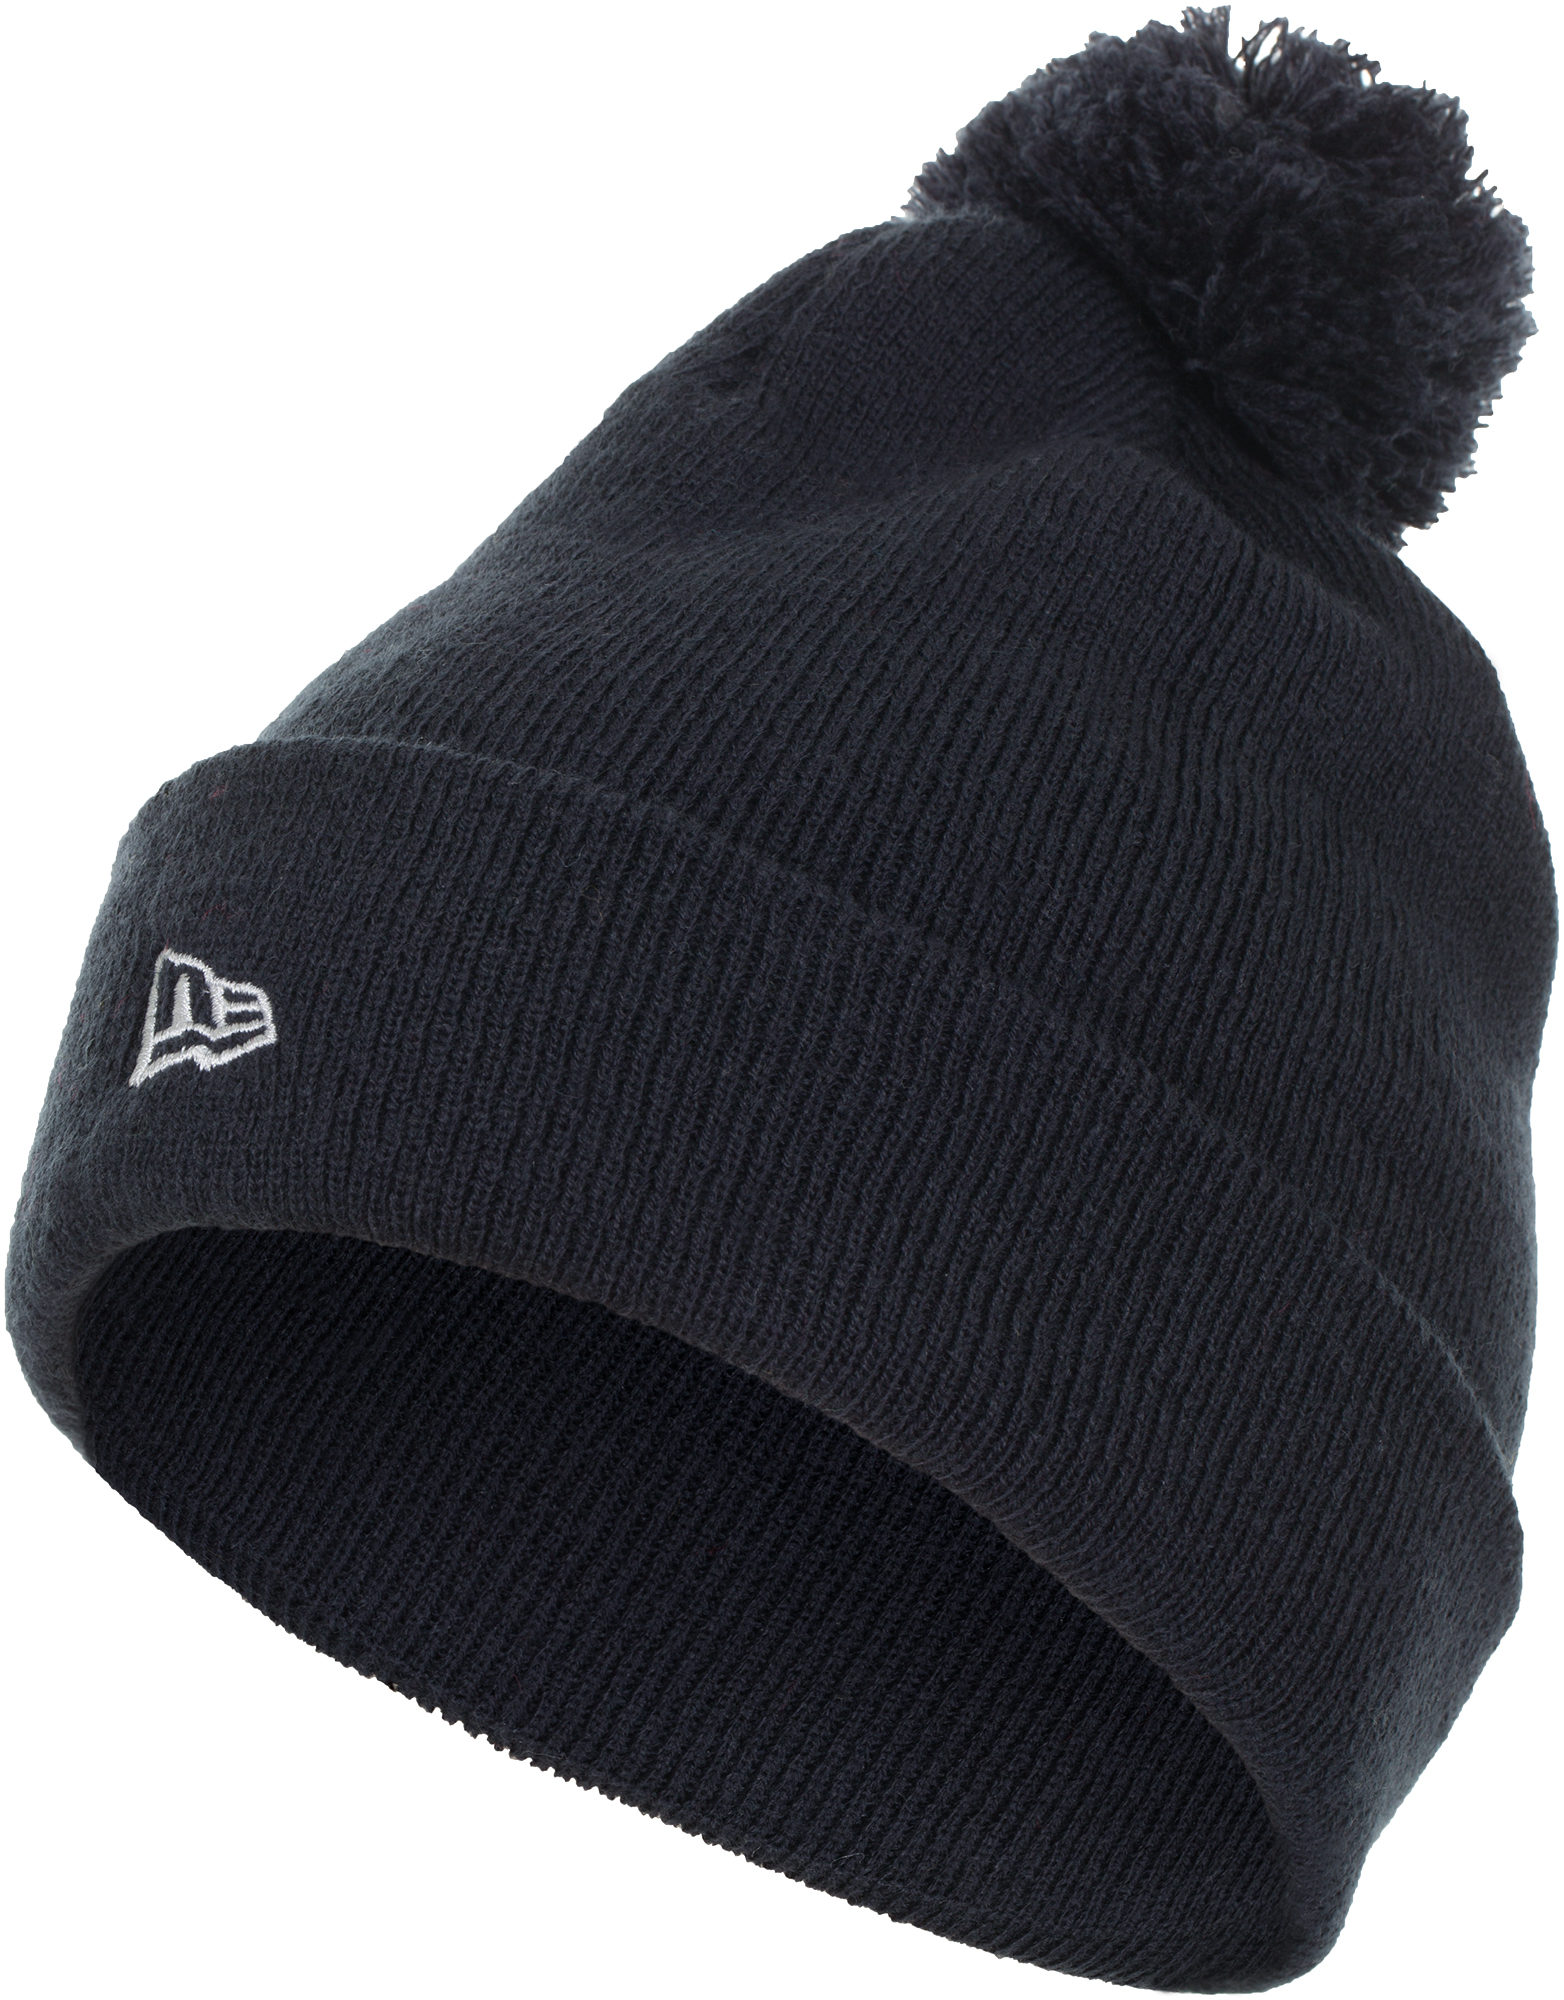 цена на New Era Шапка New Era Lic 854 Round Patch Bobble